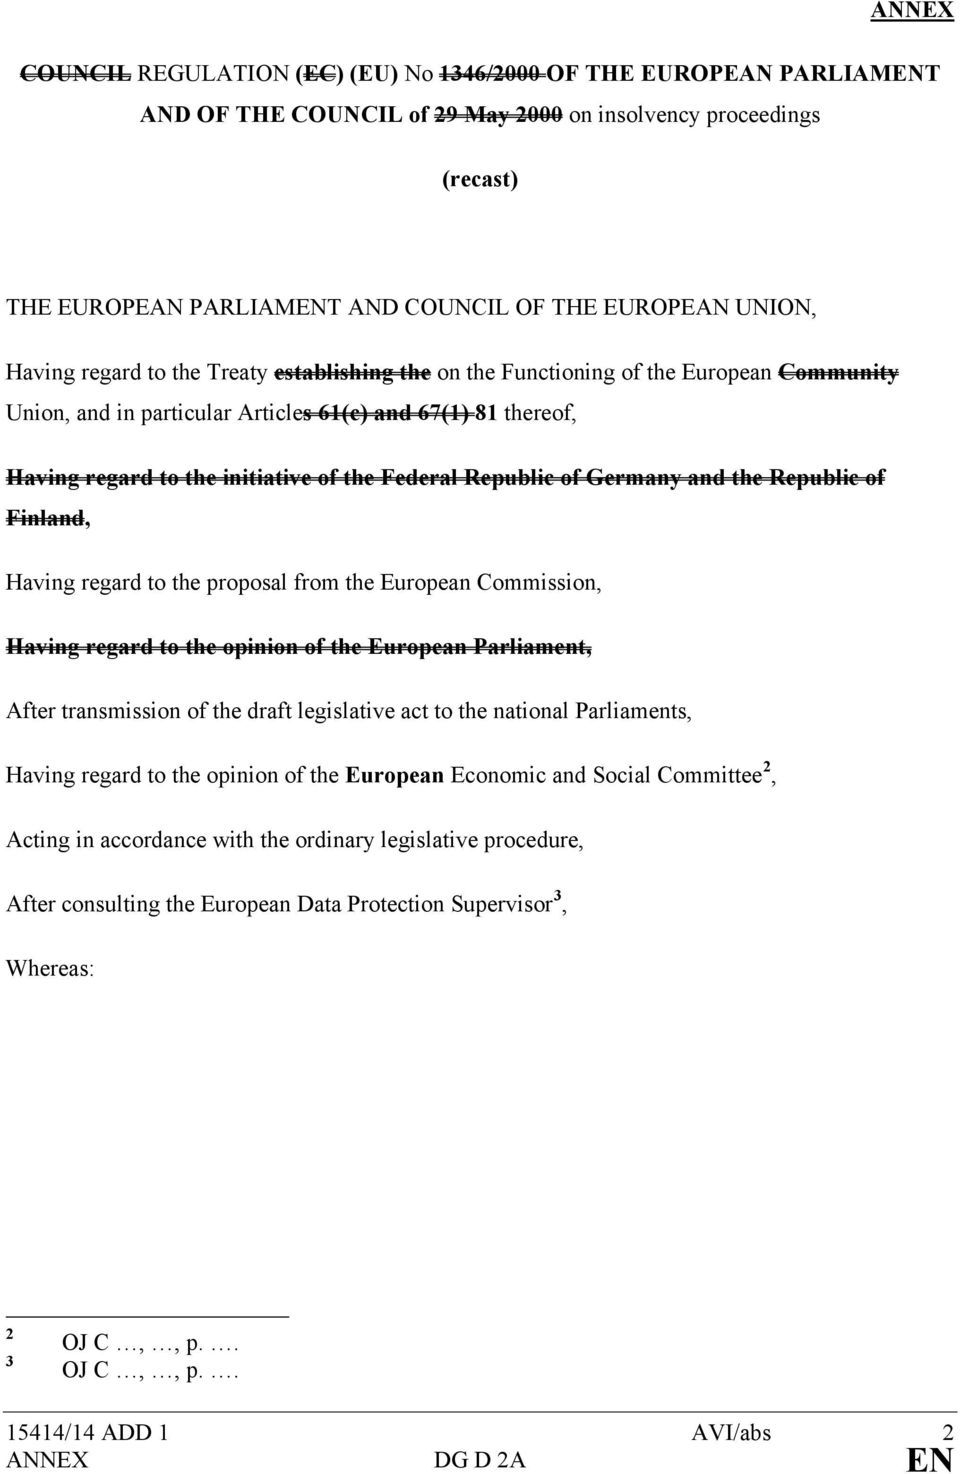 Federal Republic of Germany and the Republic of Finland, Having regard to the proposal from the European Commission, Having regard to the opinion of the European Parliament, After transmission of the